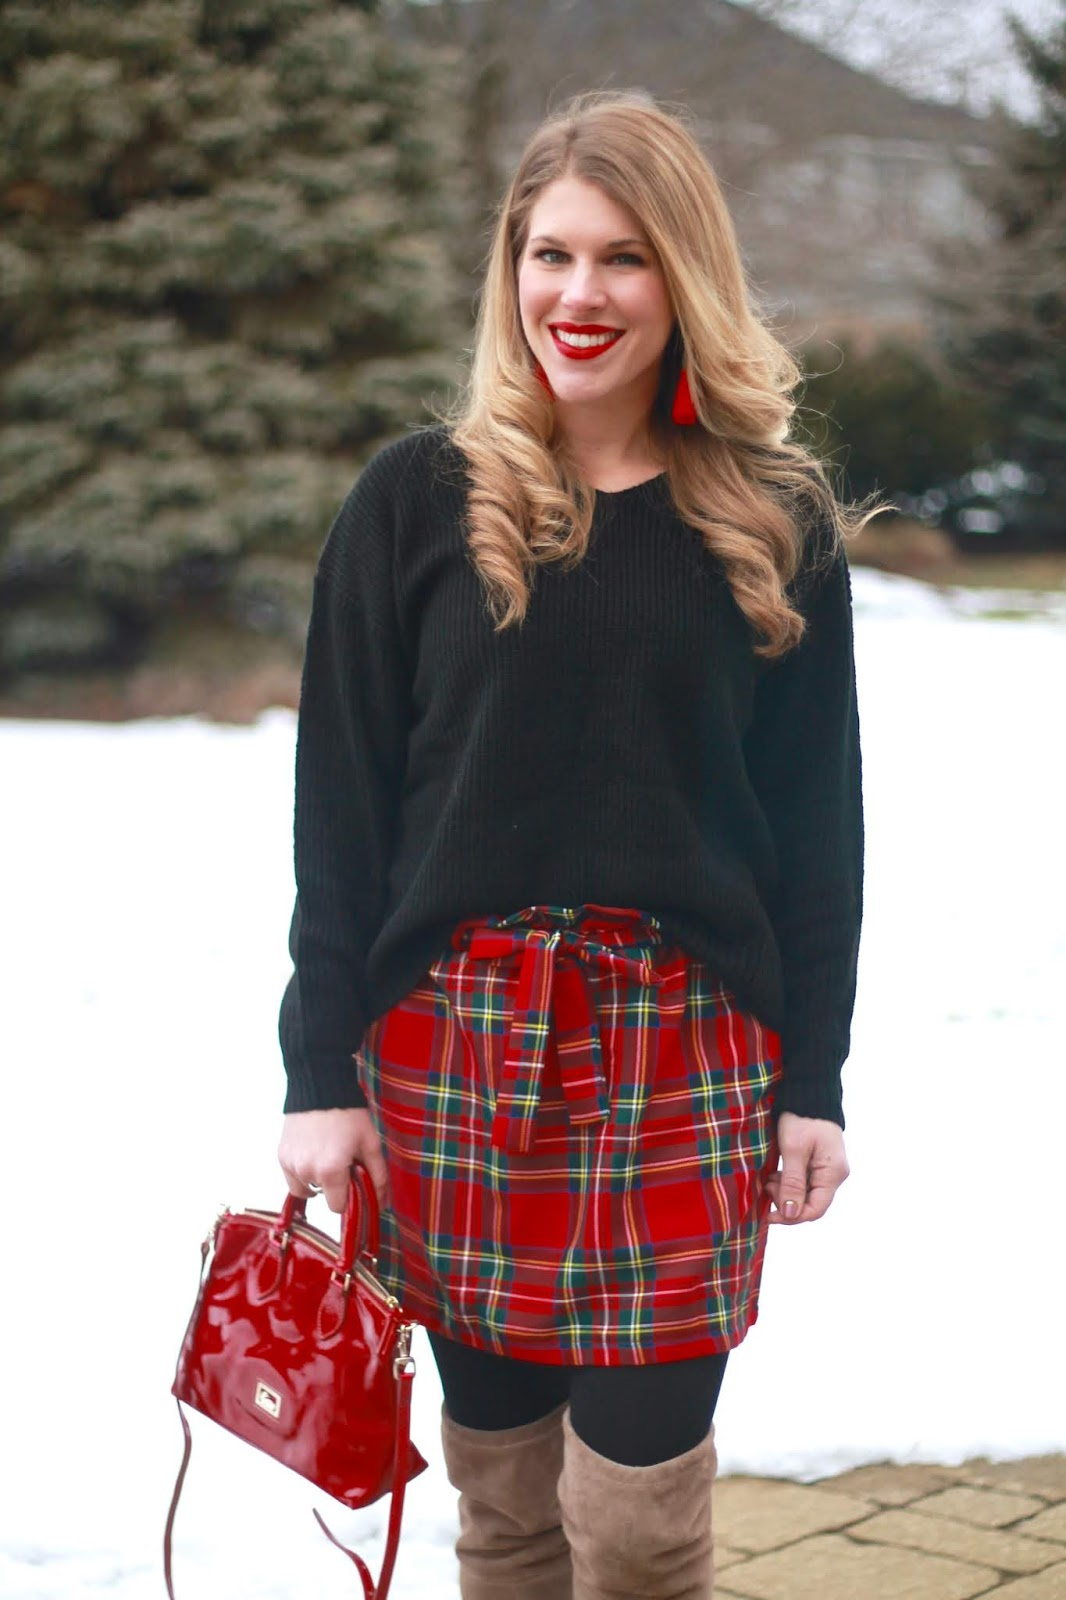 shein red plaid skirt, black v neck sweater, taupe OTK boots, red patent leather bag